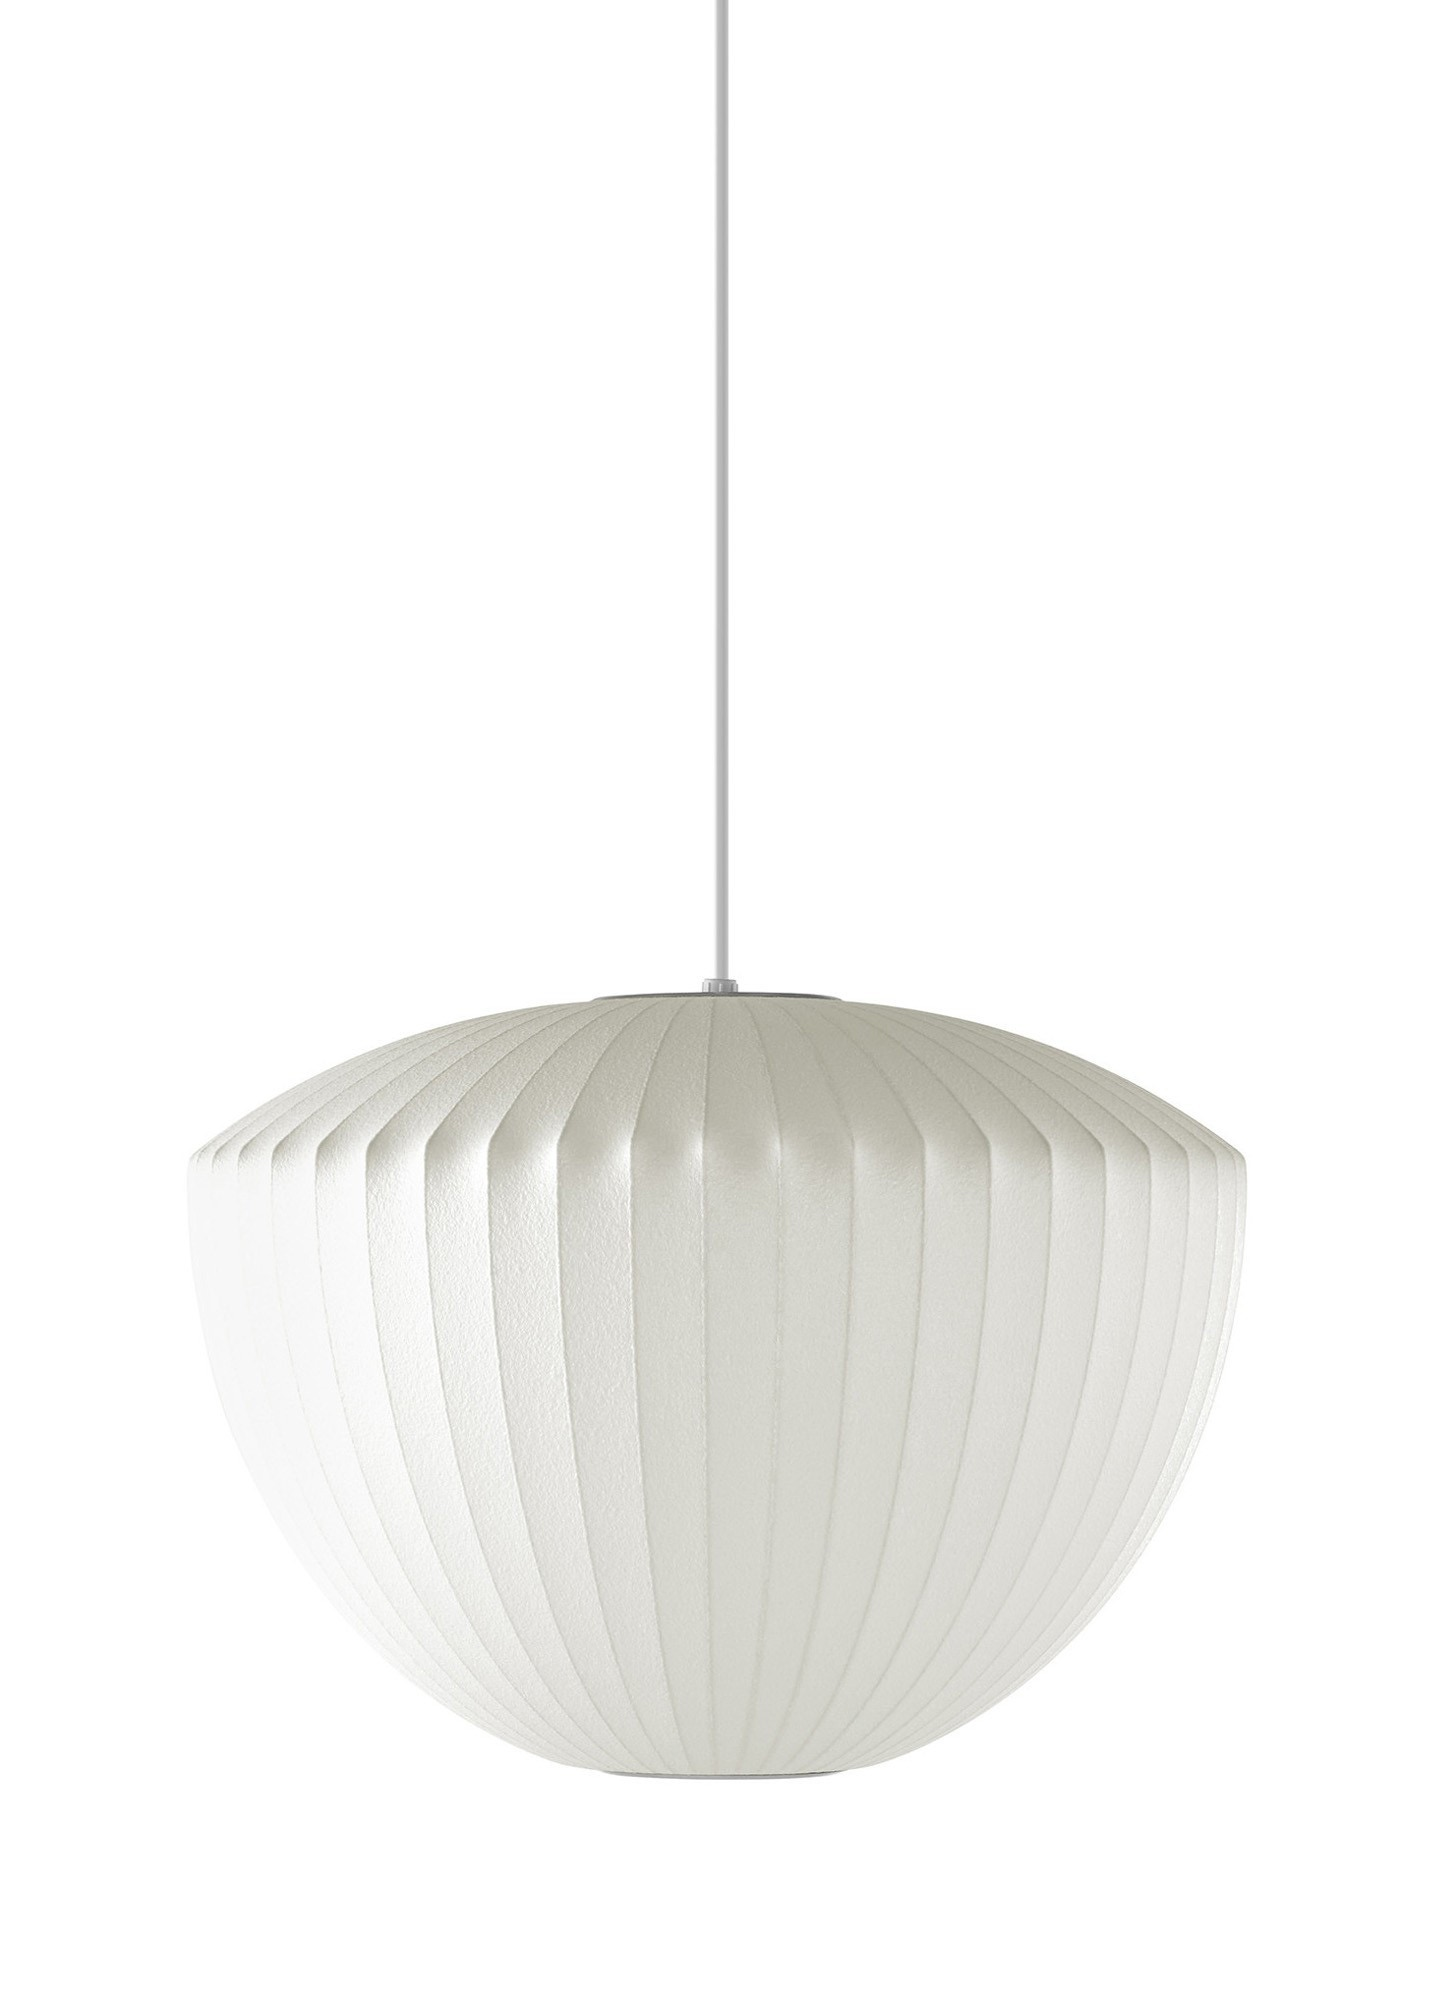 Herman miller nelson apple bubble lamp pendant